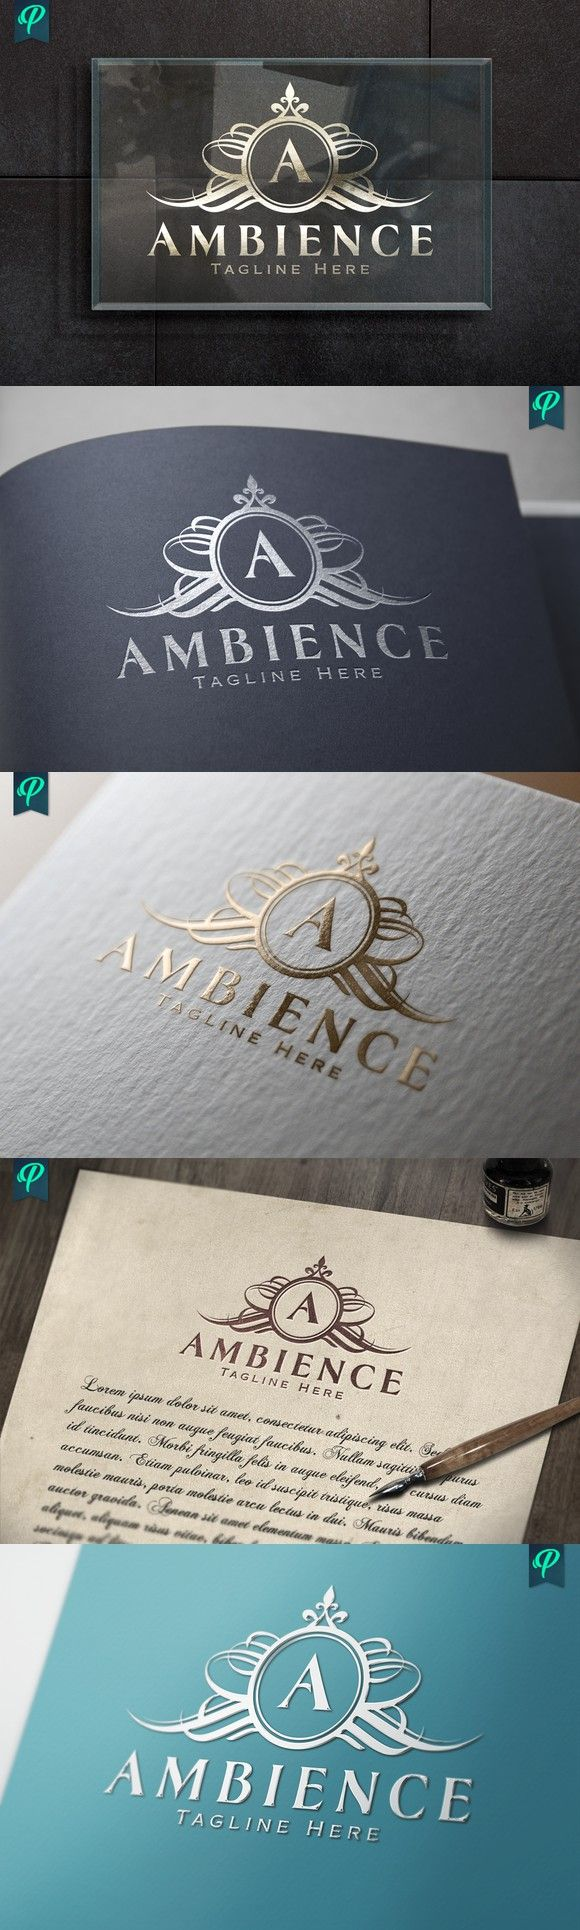 about luxury logo design on pinterest logo inspiration luxury logo